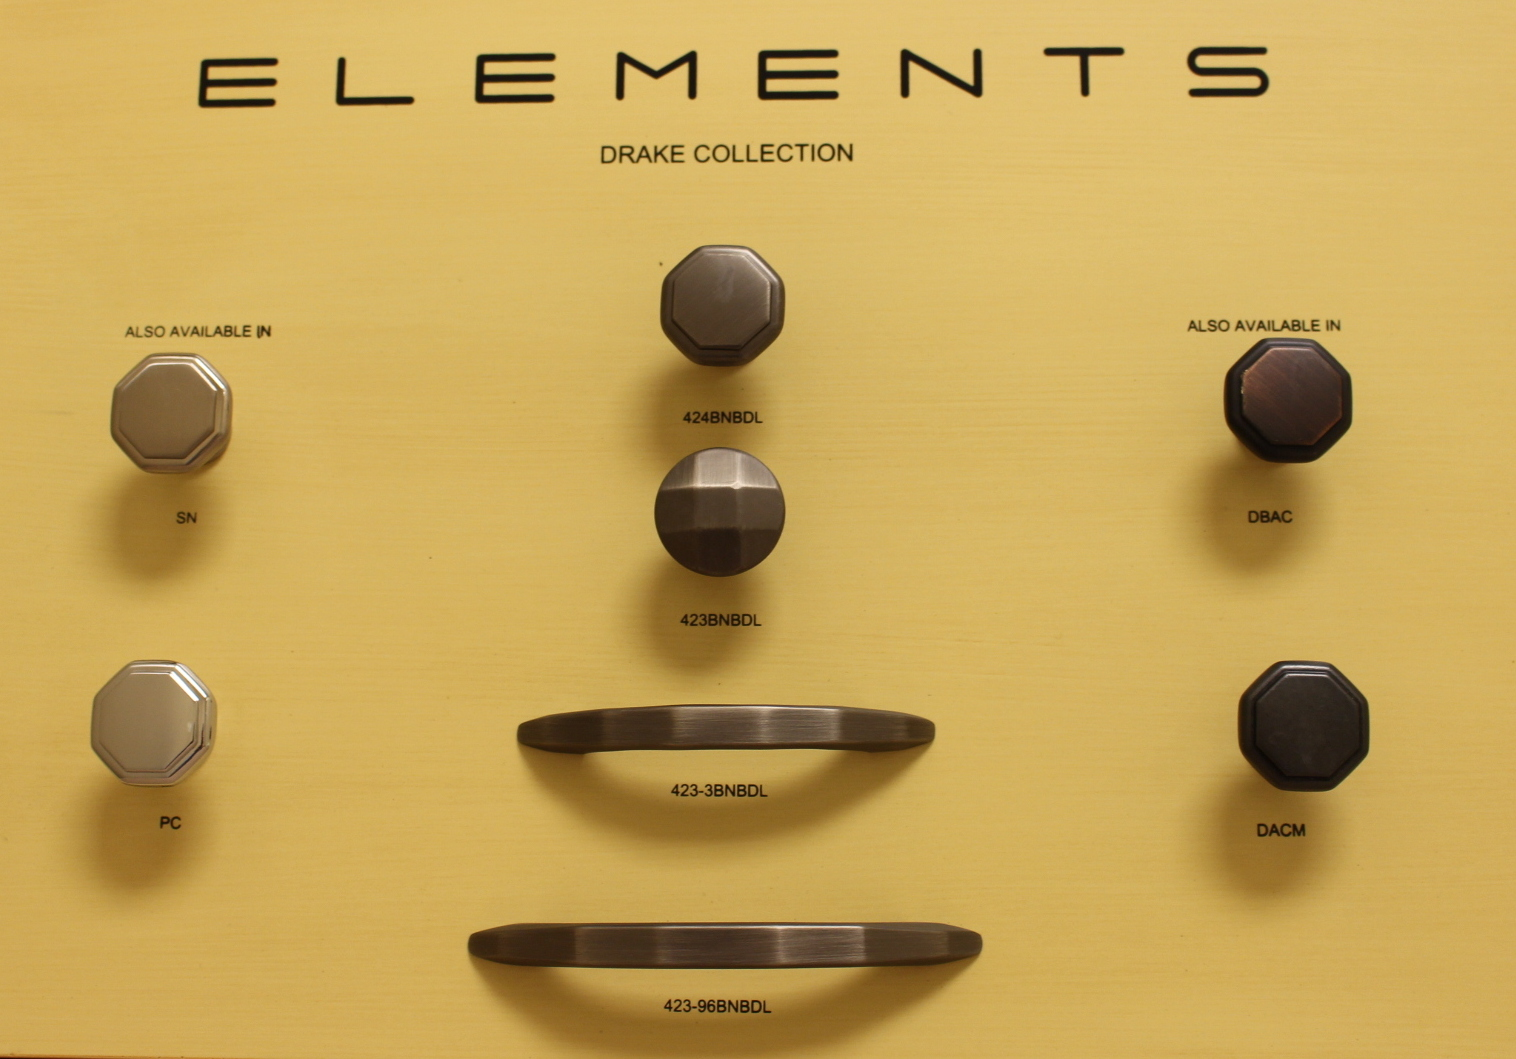 Drakes Collection_Elements.jpg